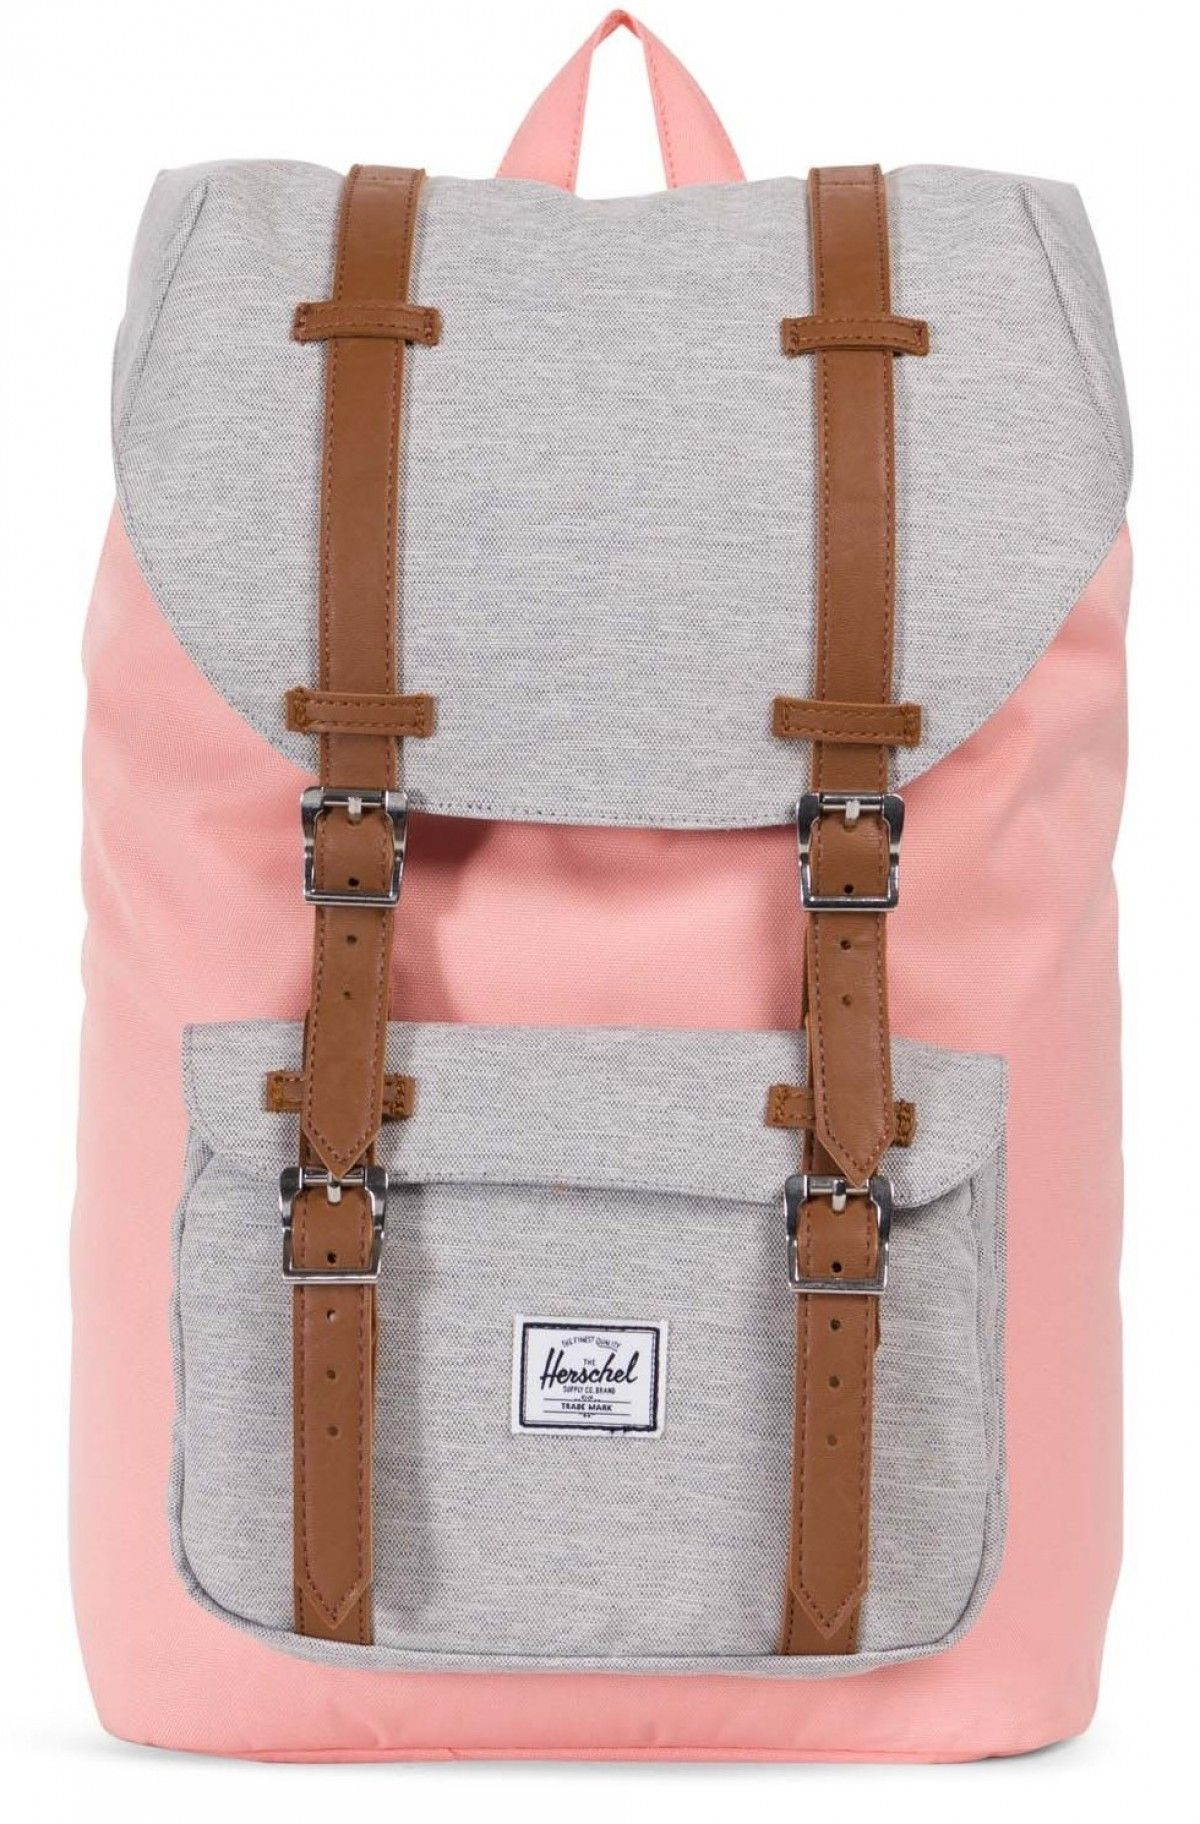 cc9a83ddf154 Herschel Little America Mid Backpack 600D Poly Peach Light Grey  Crosshatch Tan